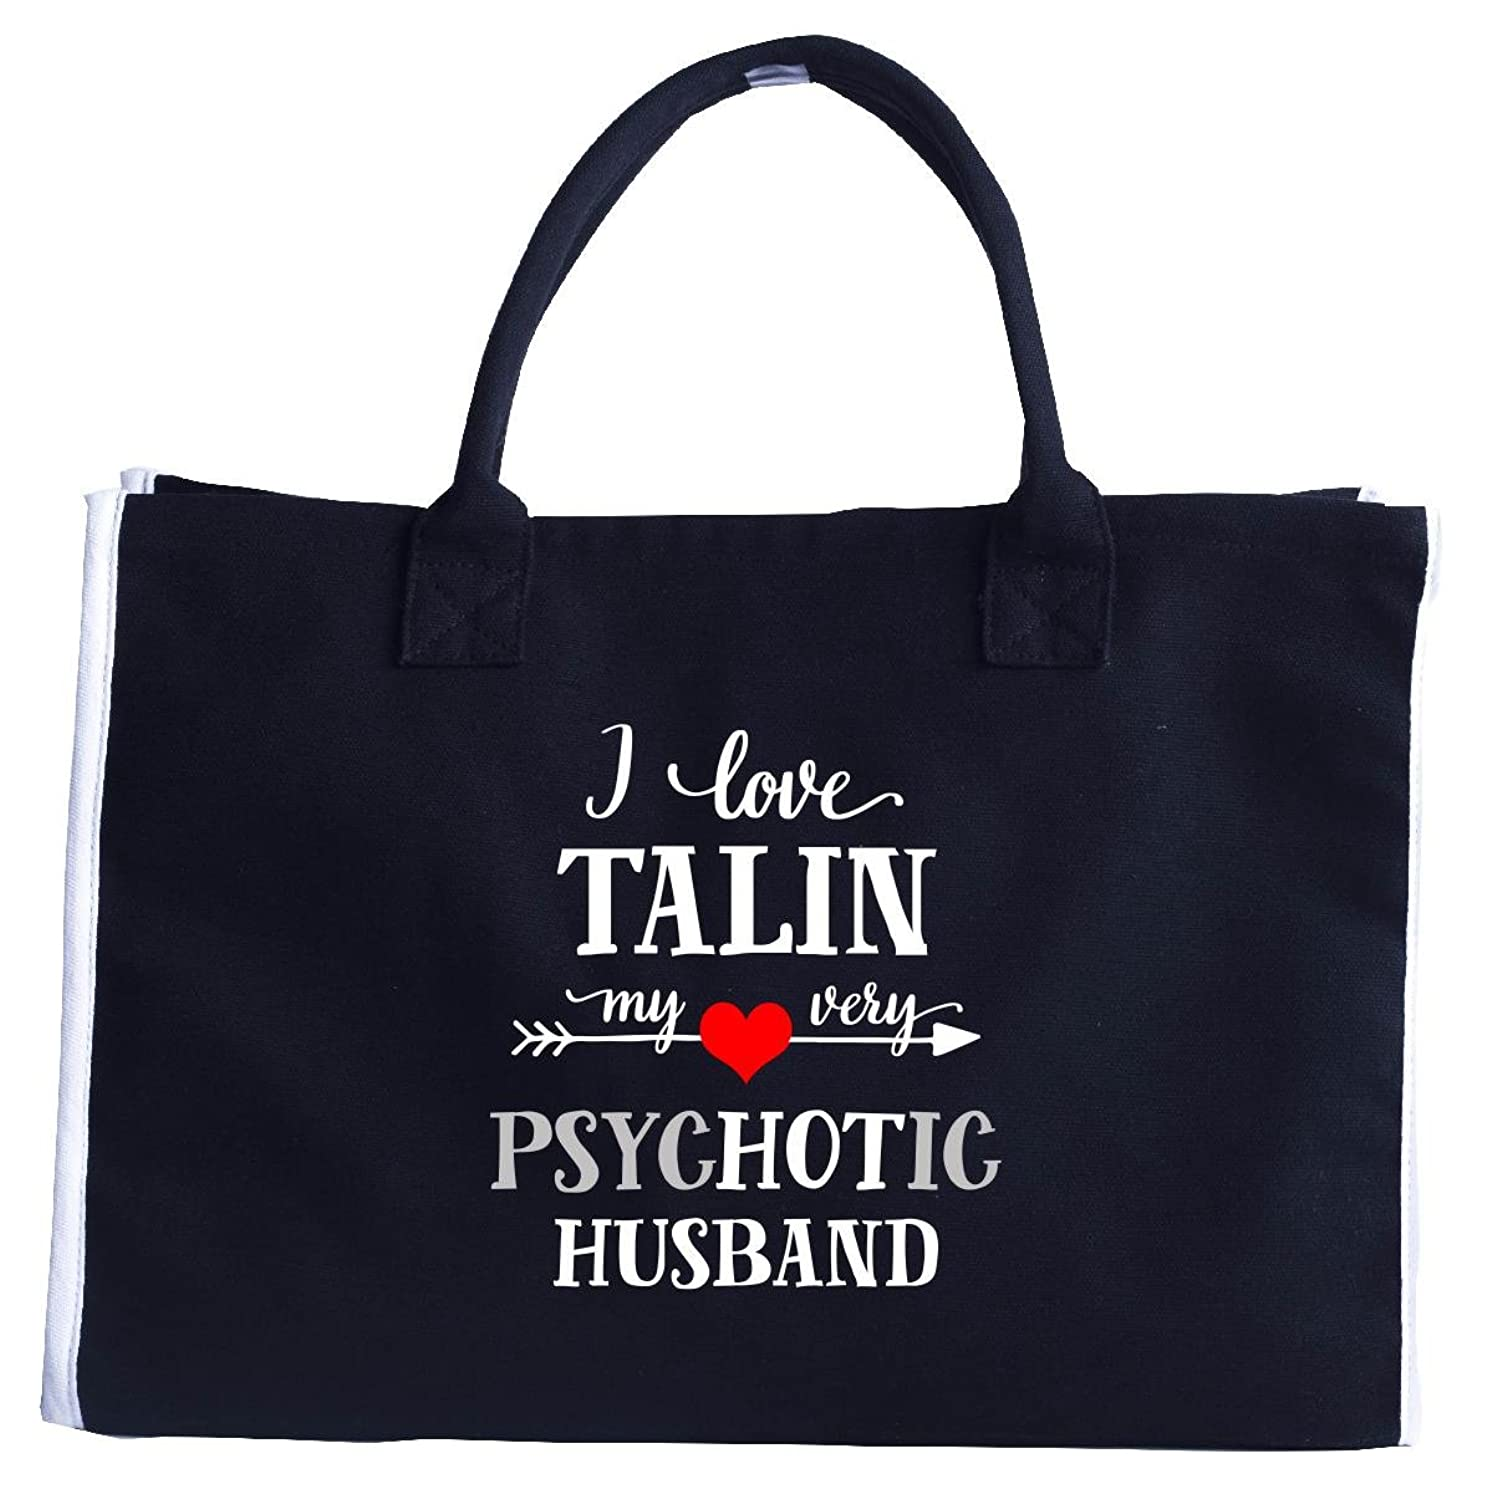 I Love Talin My Very Psychotic Husband. Gift For Her - Fashion Tote Bag